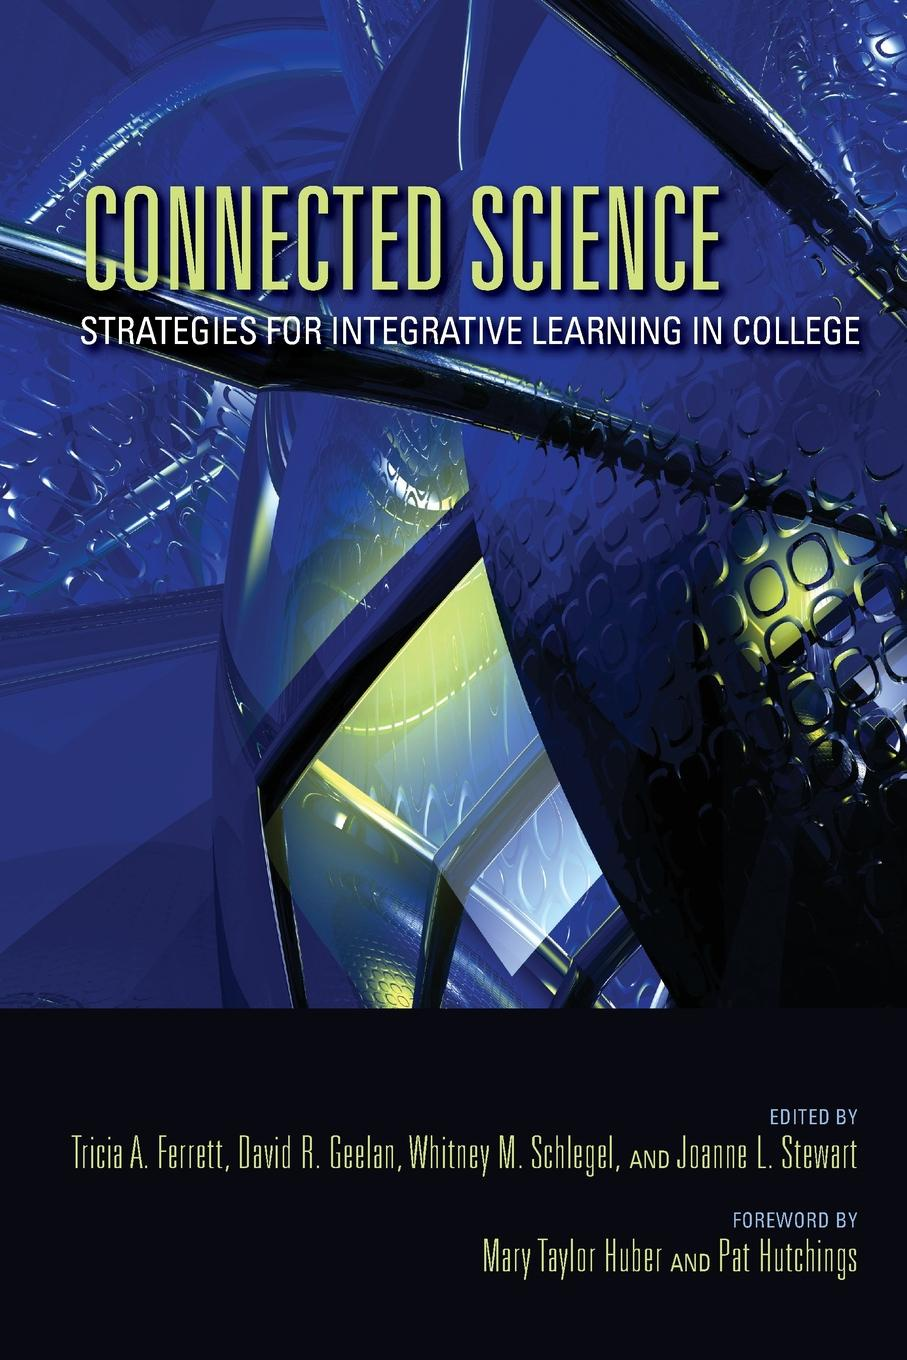 Connected Science. Strategies for Integrative Learning in College купить недорого в Москве